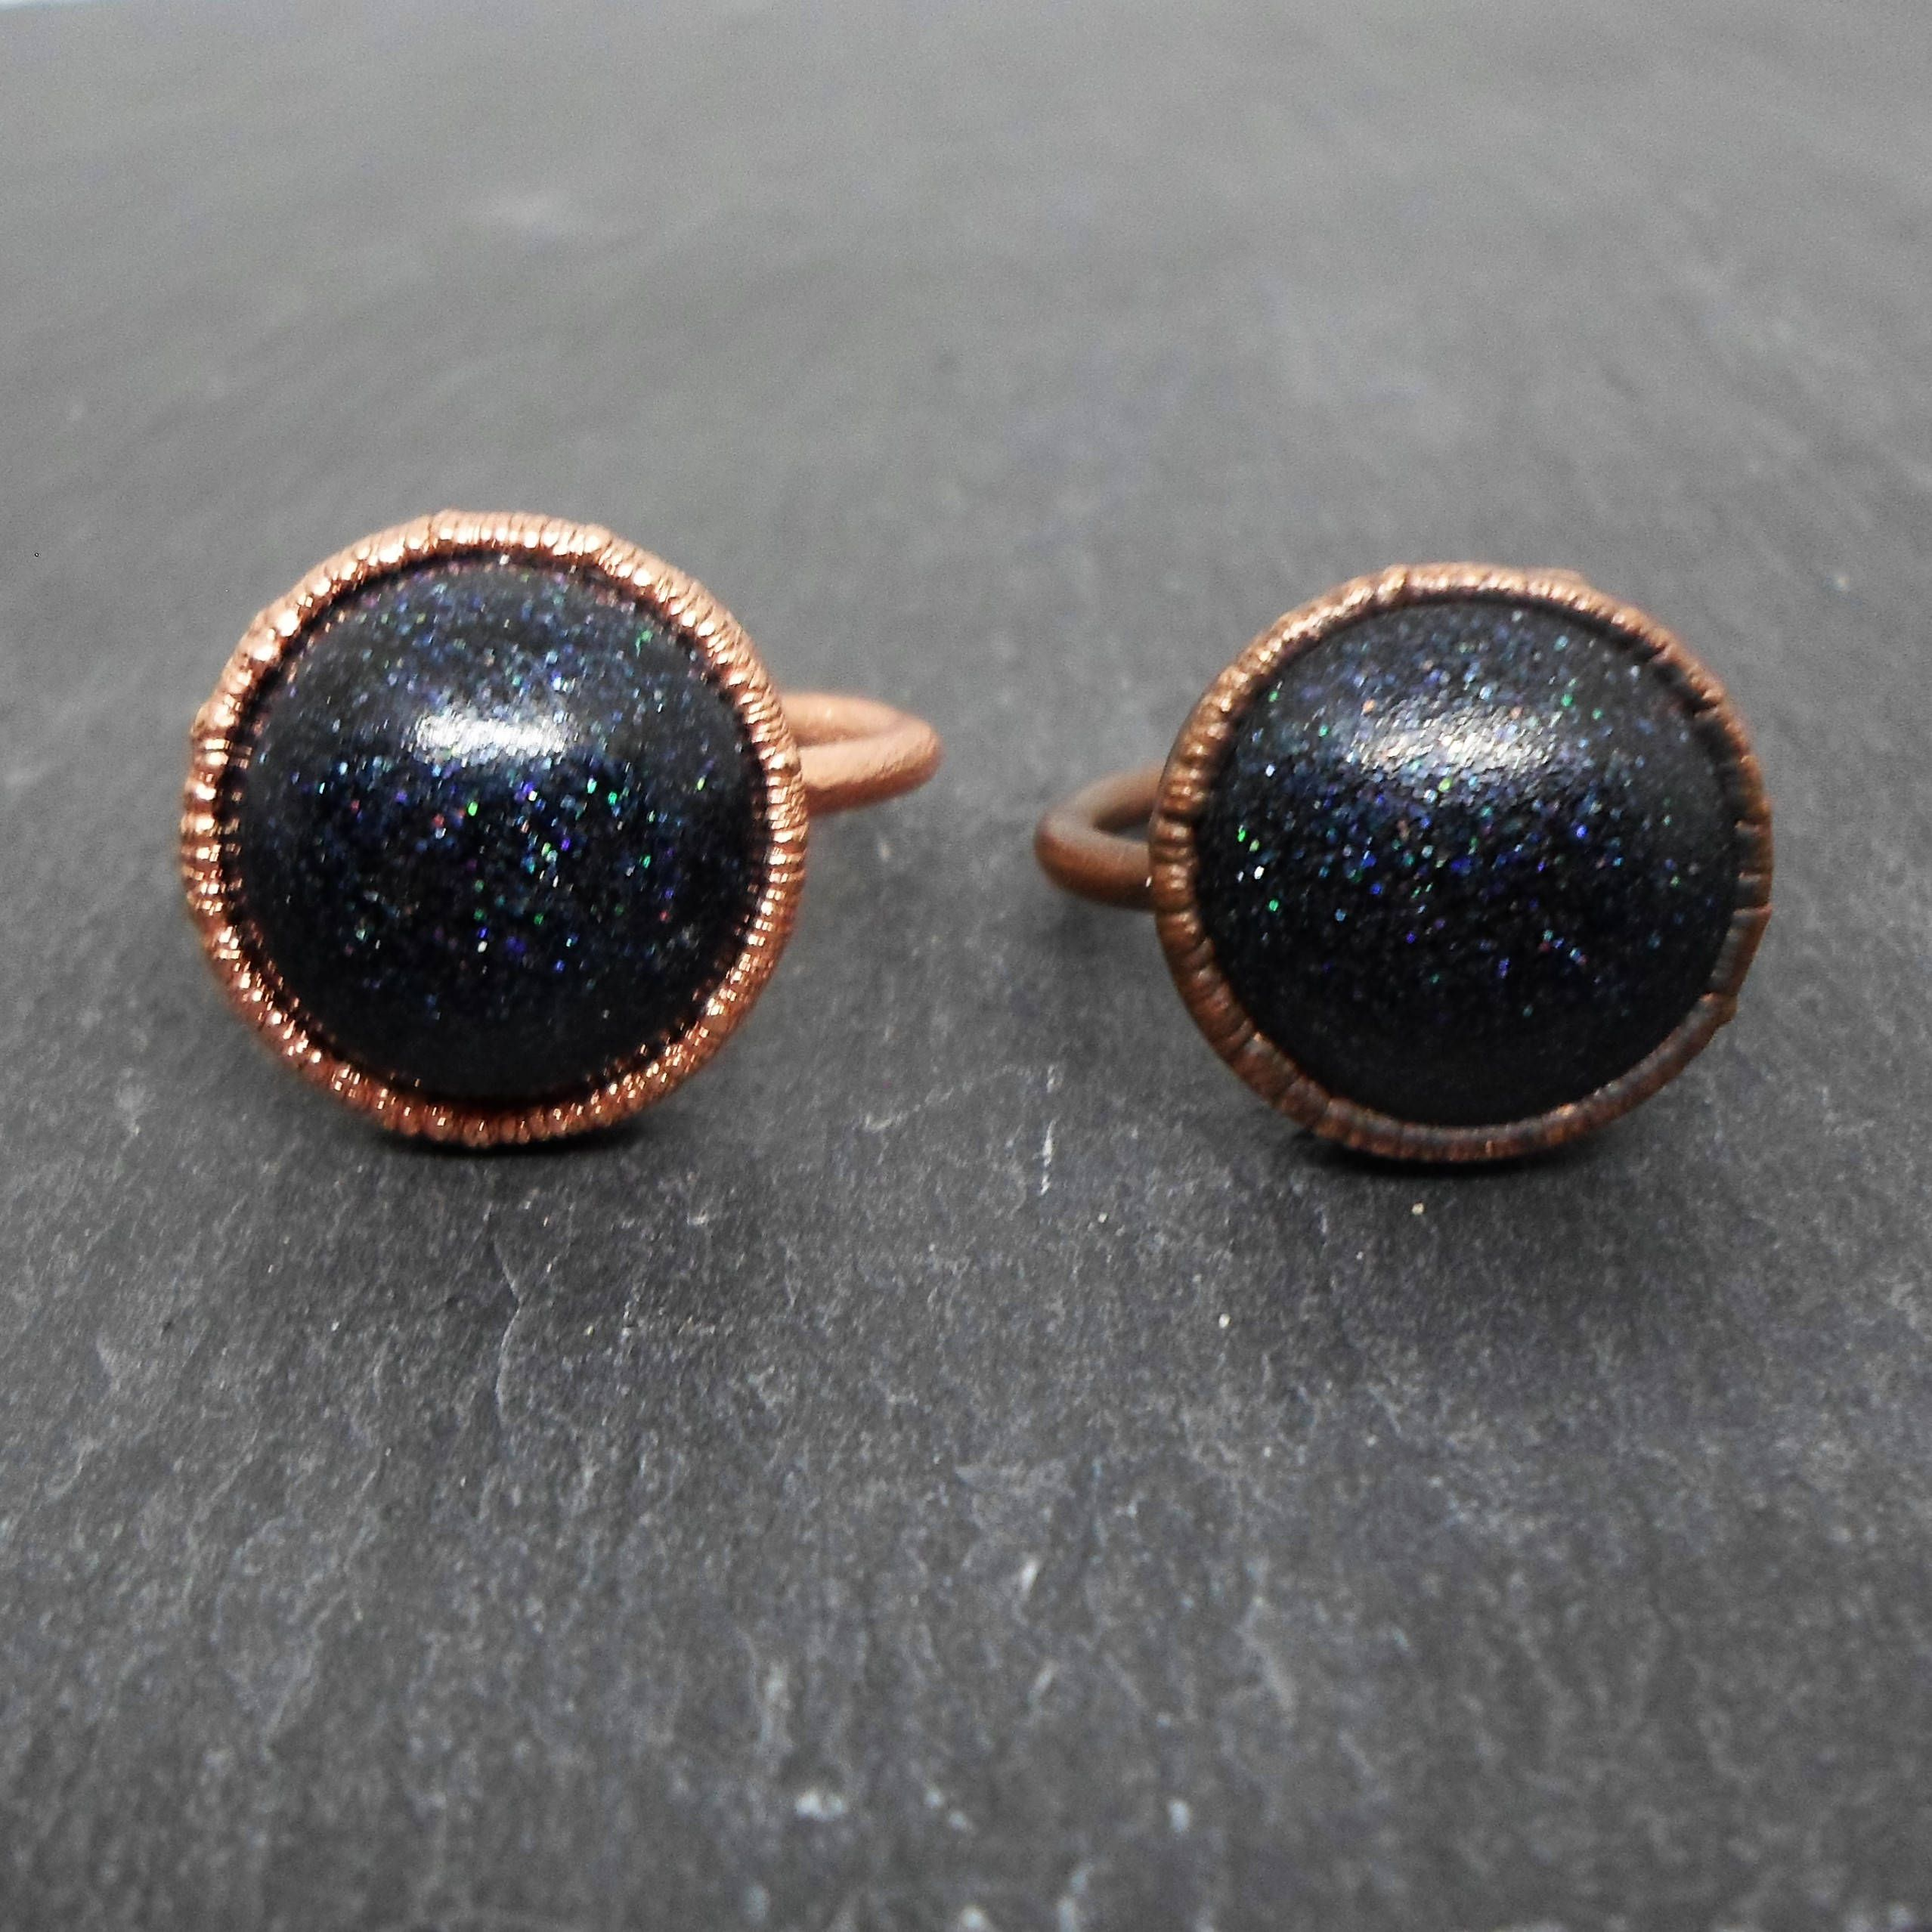 Black Holographic Glitter Resin Electroformed Rings witch boho